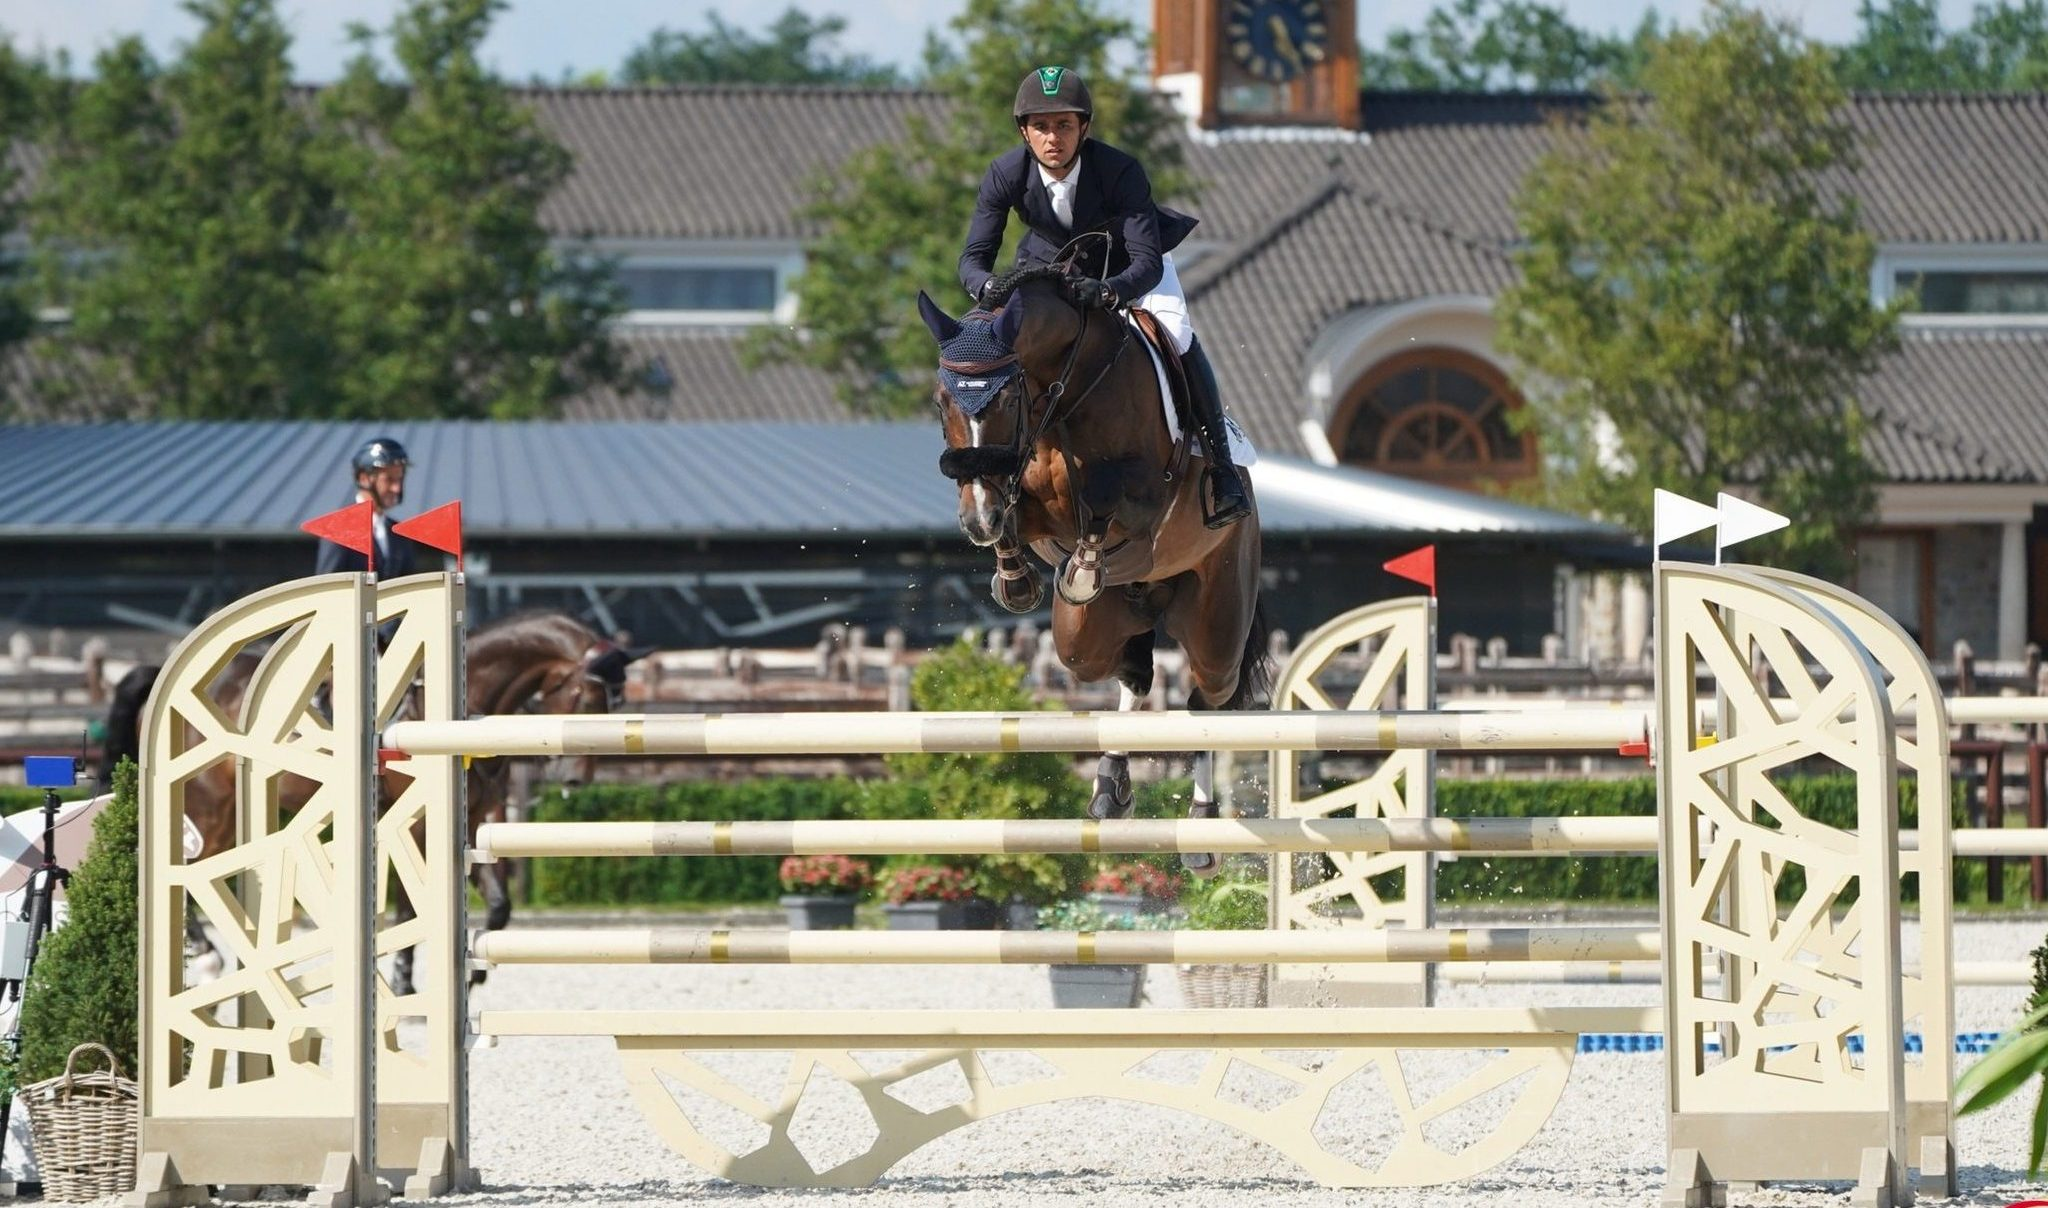 2nd place for Luigi in Big Tour in Valkenswaard